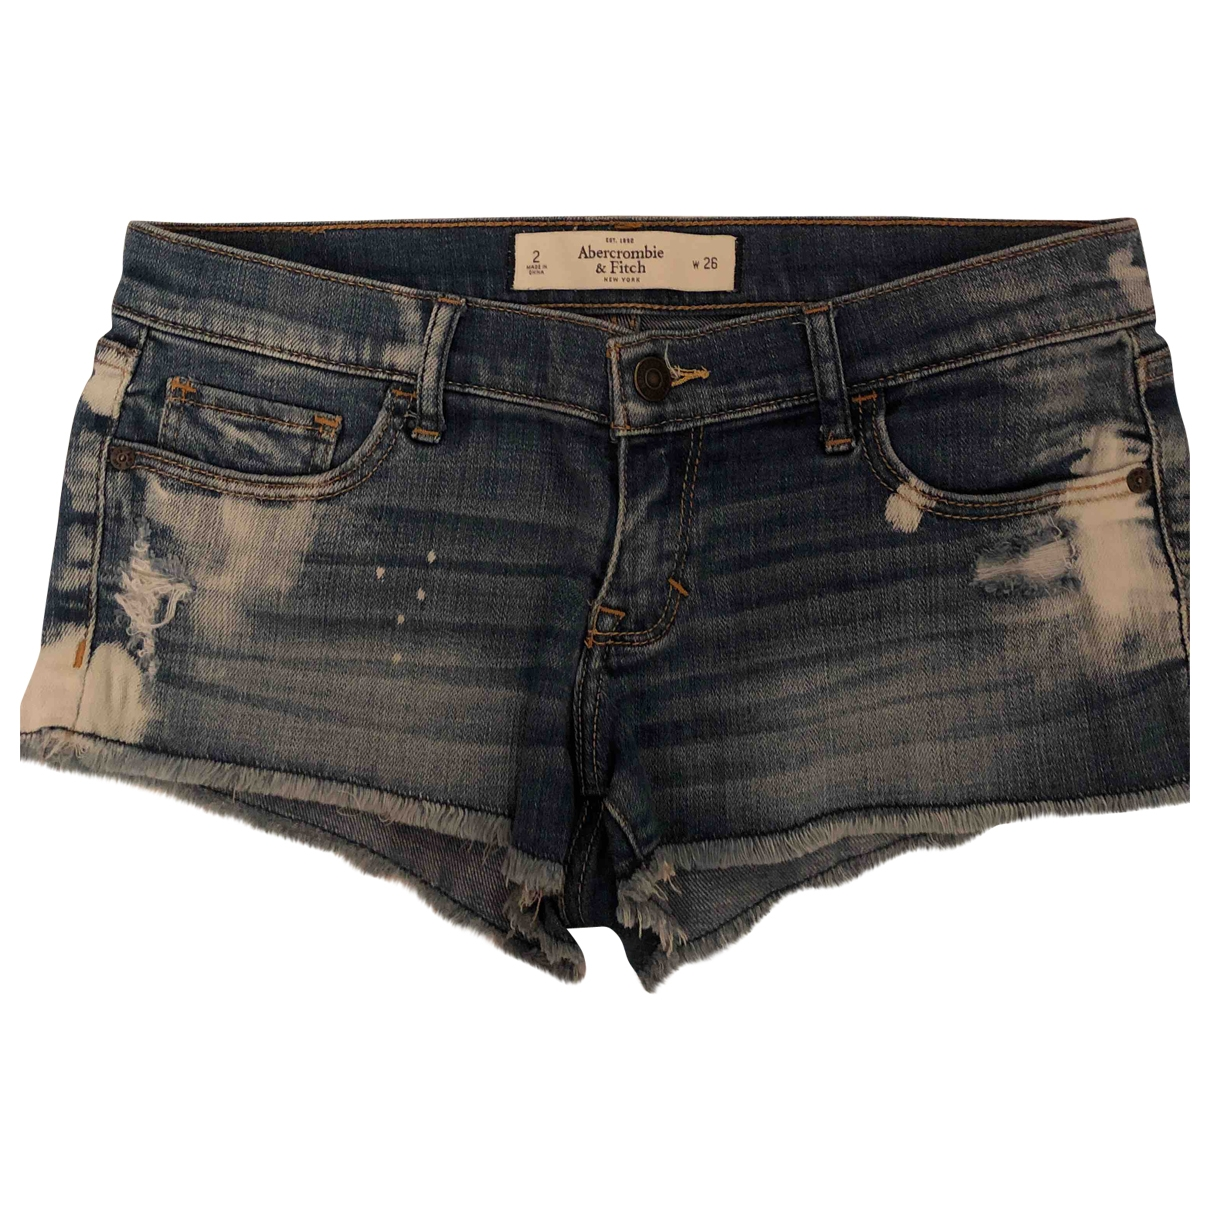 Abercrombie & Fitch \N Blue Denim - Jeans Shorts for Women 2 0-5